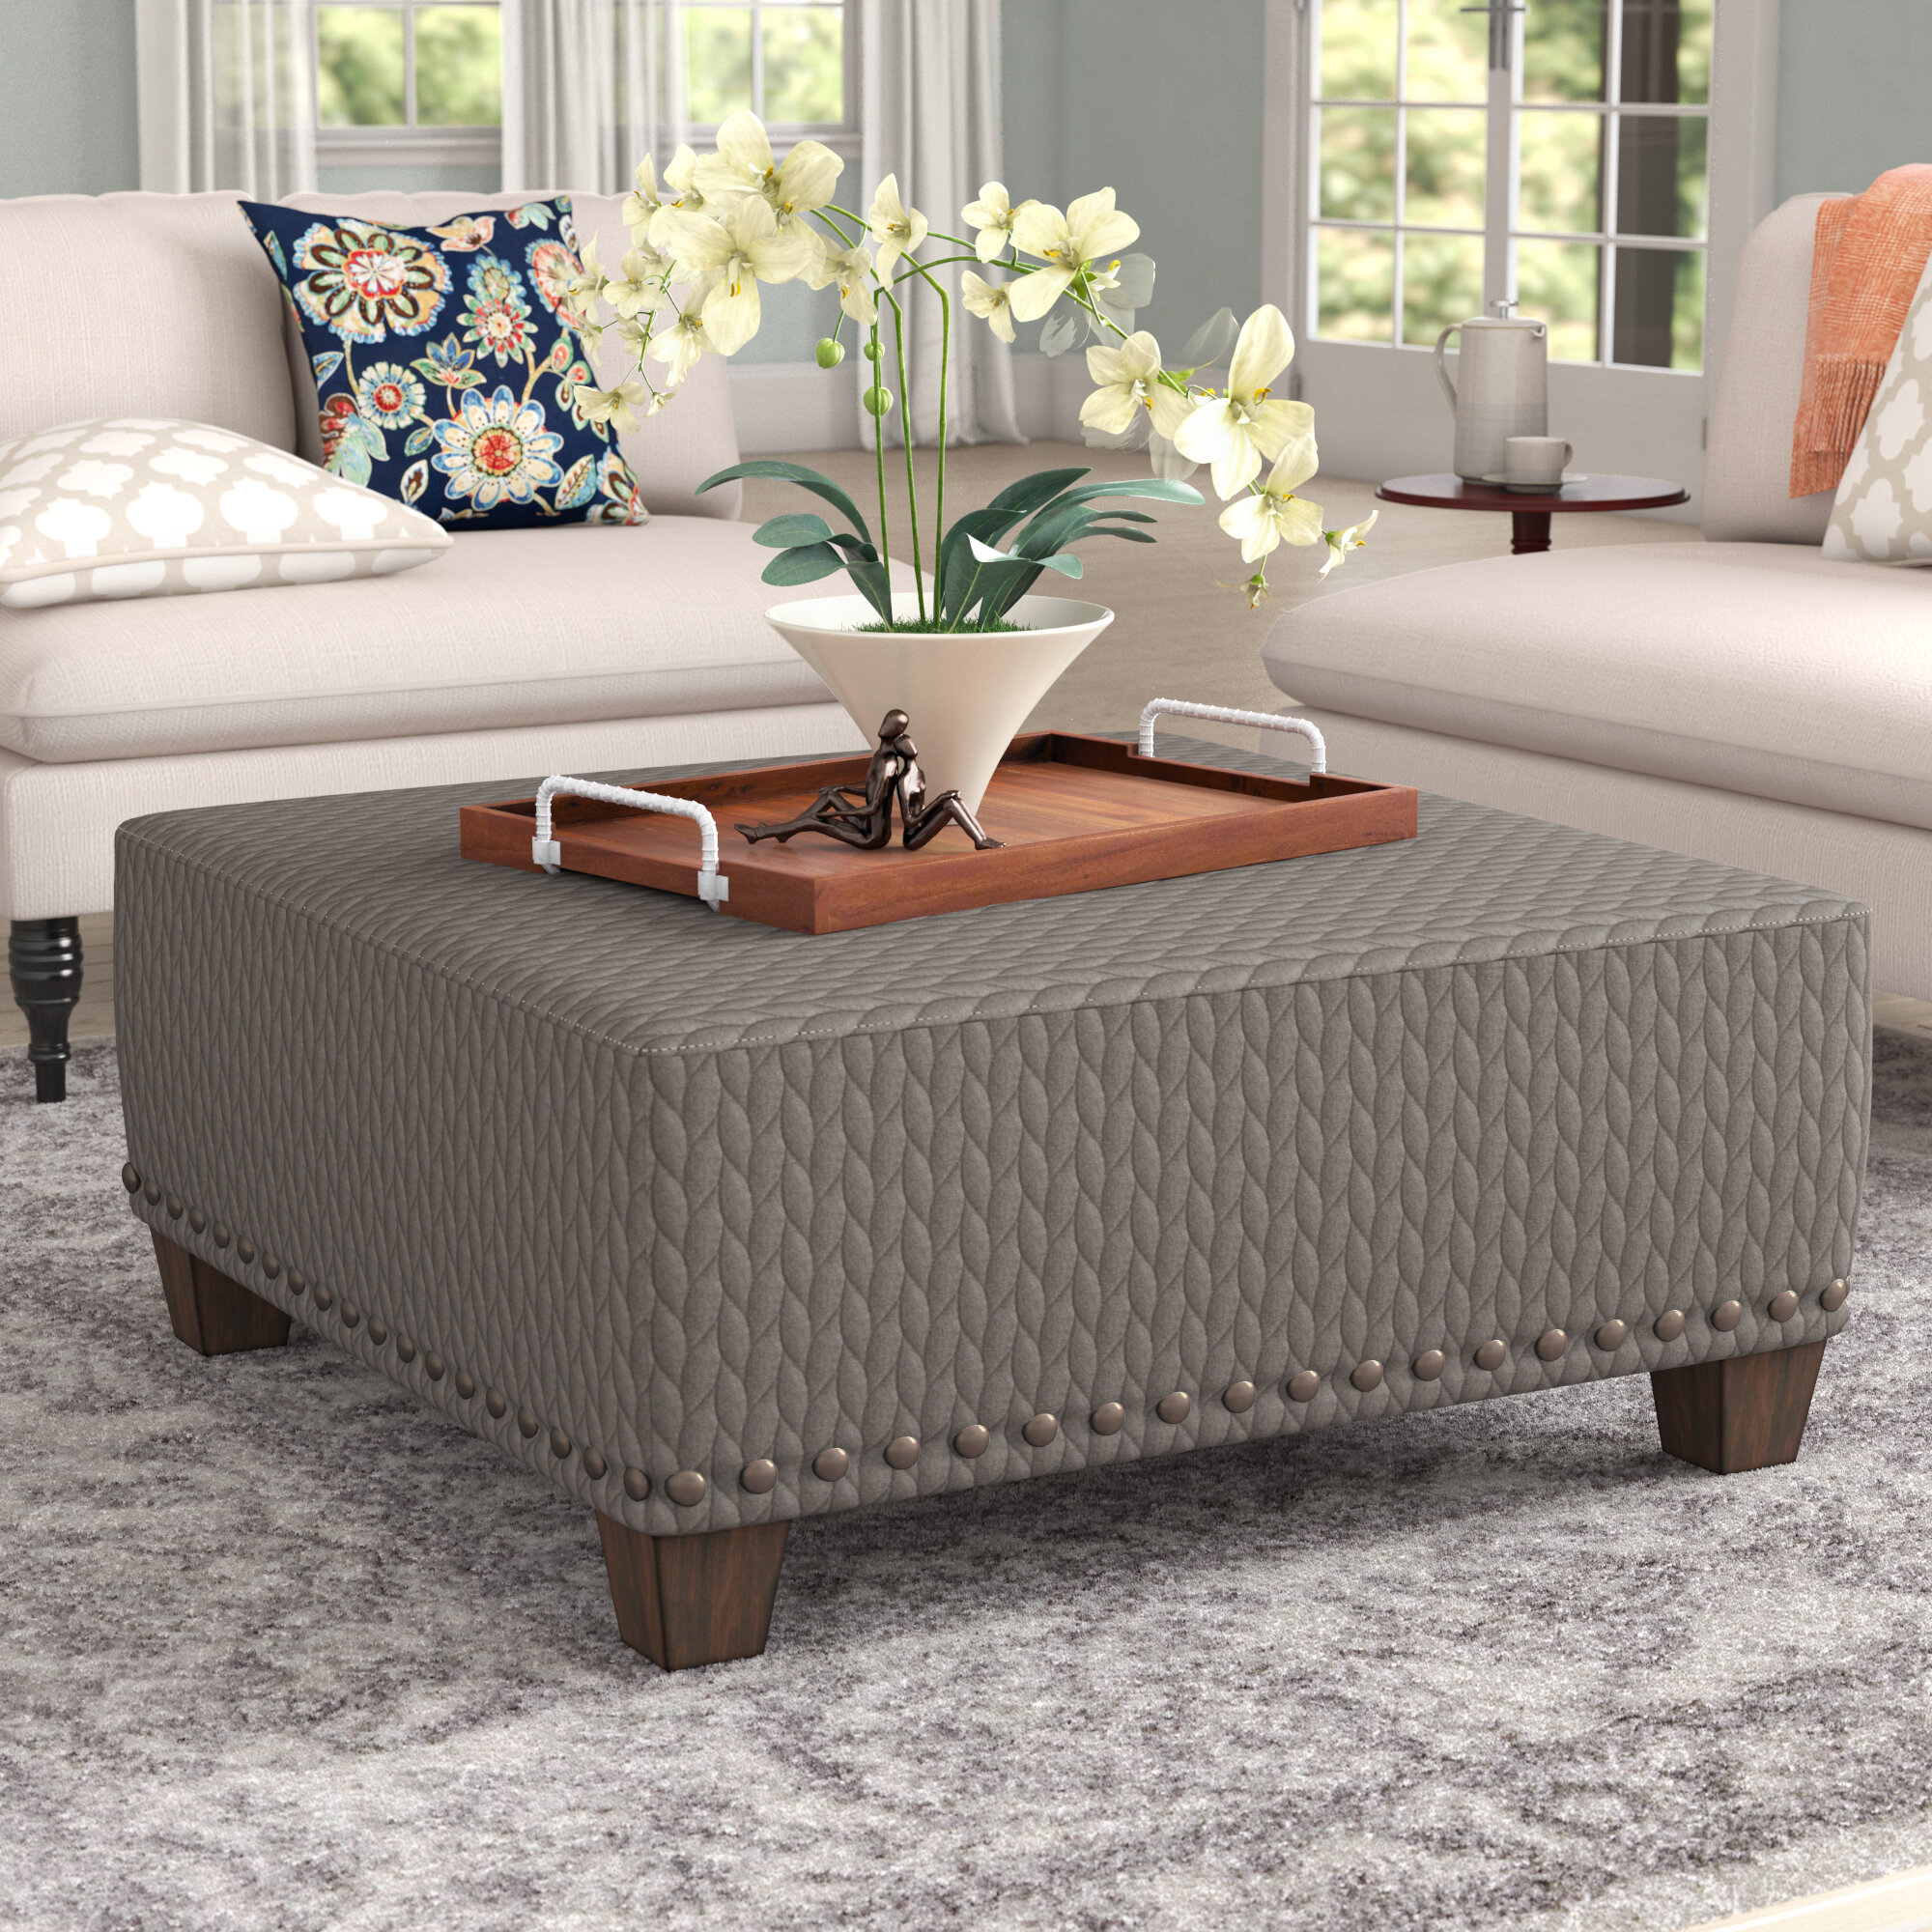 home reviews darby co balamine pdx wayfair furniture cocktail ottoman